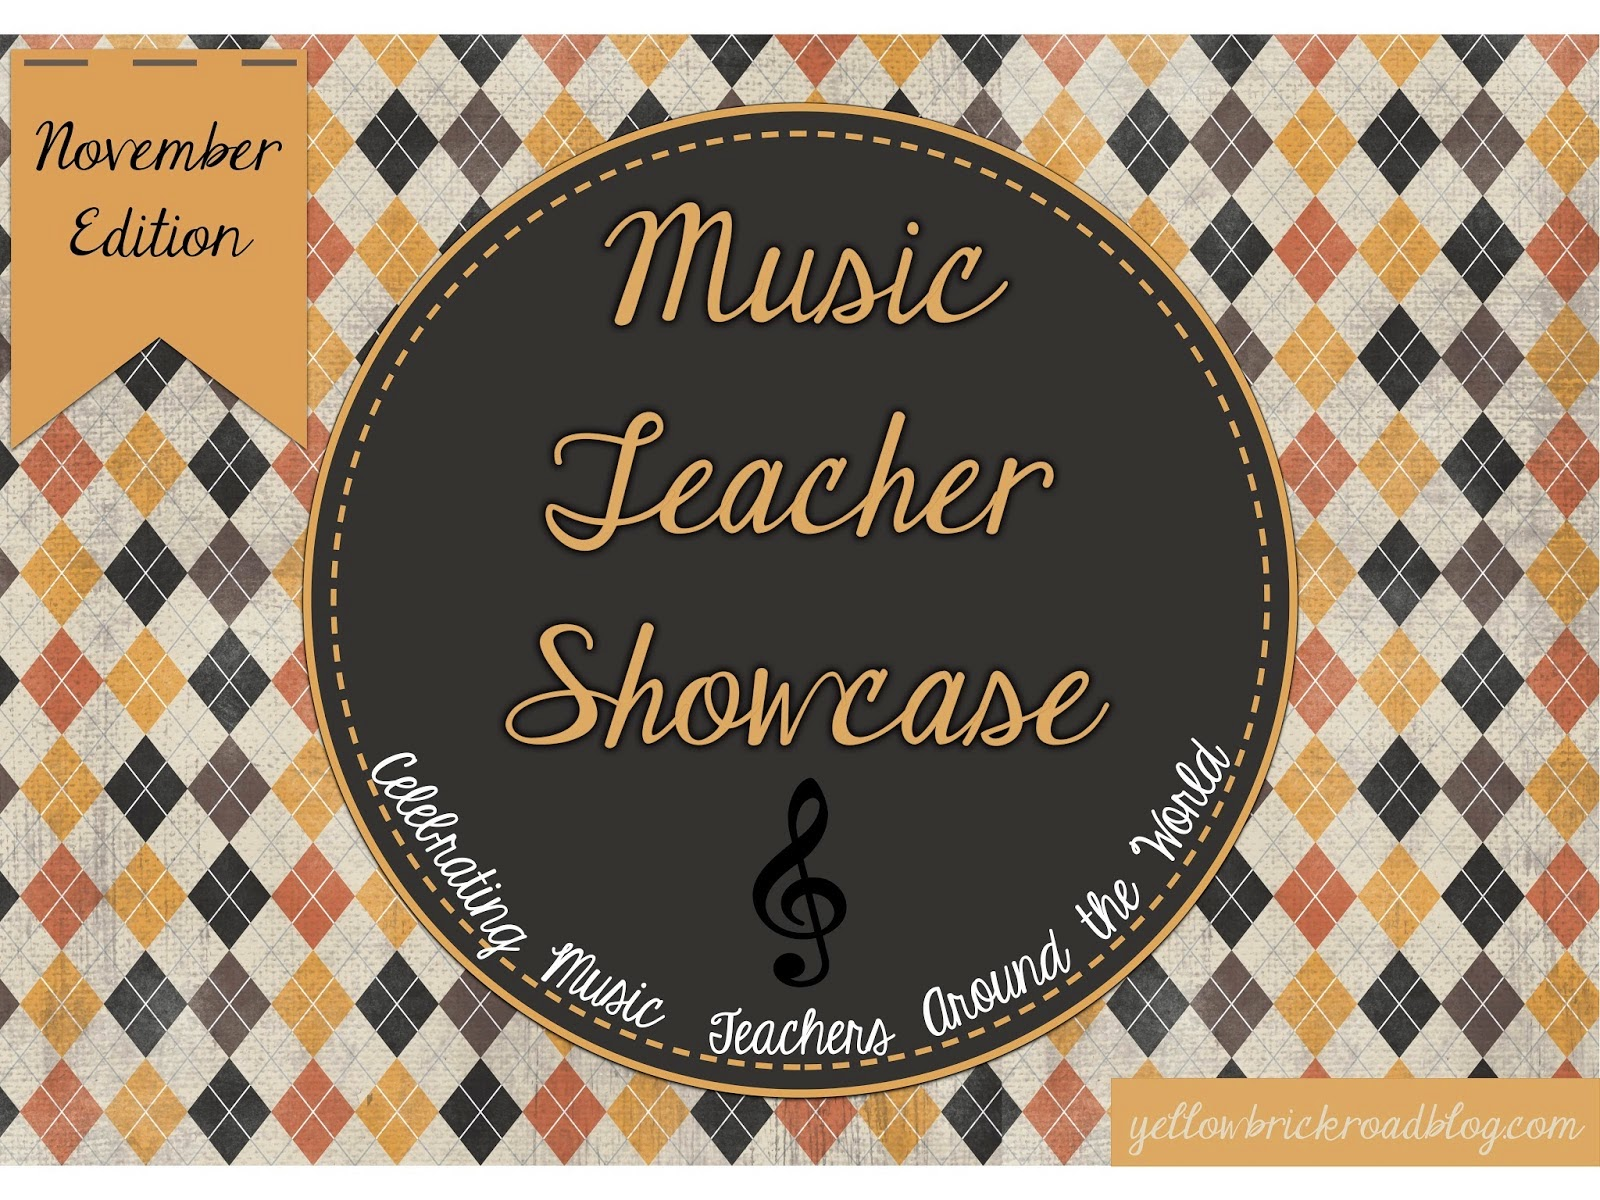 http://www.yellowbrickroadblog.com/2014/11/music-teacher-showcase-november.html